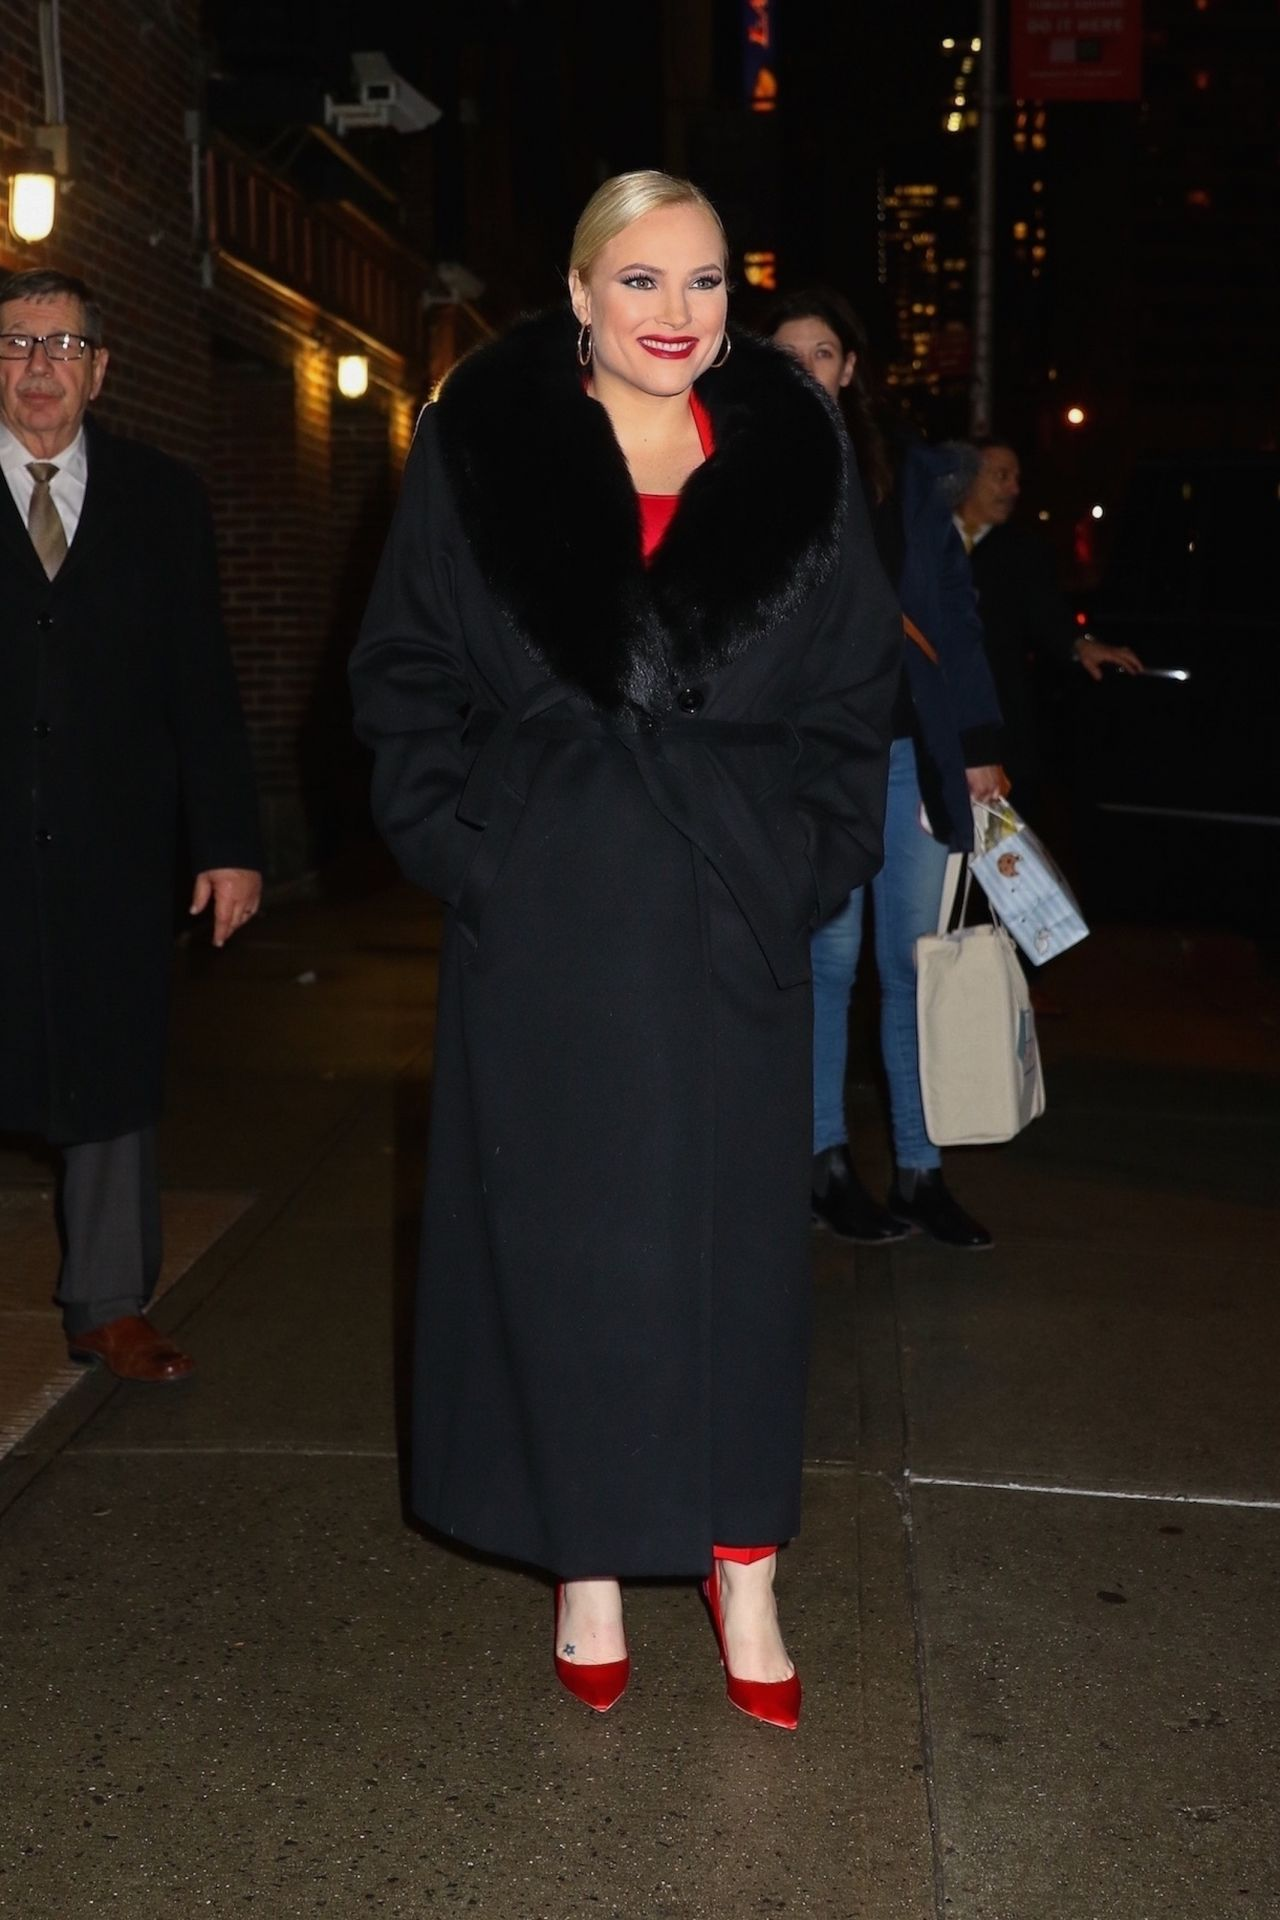 Meghan McCain Leaves The Late Show With Stephen Colbert